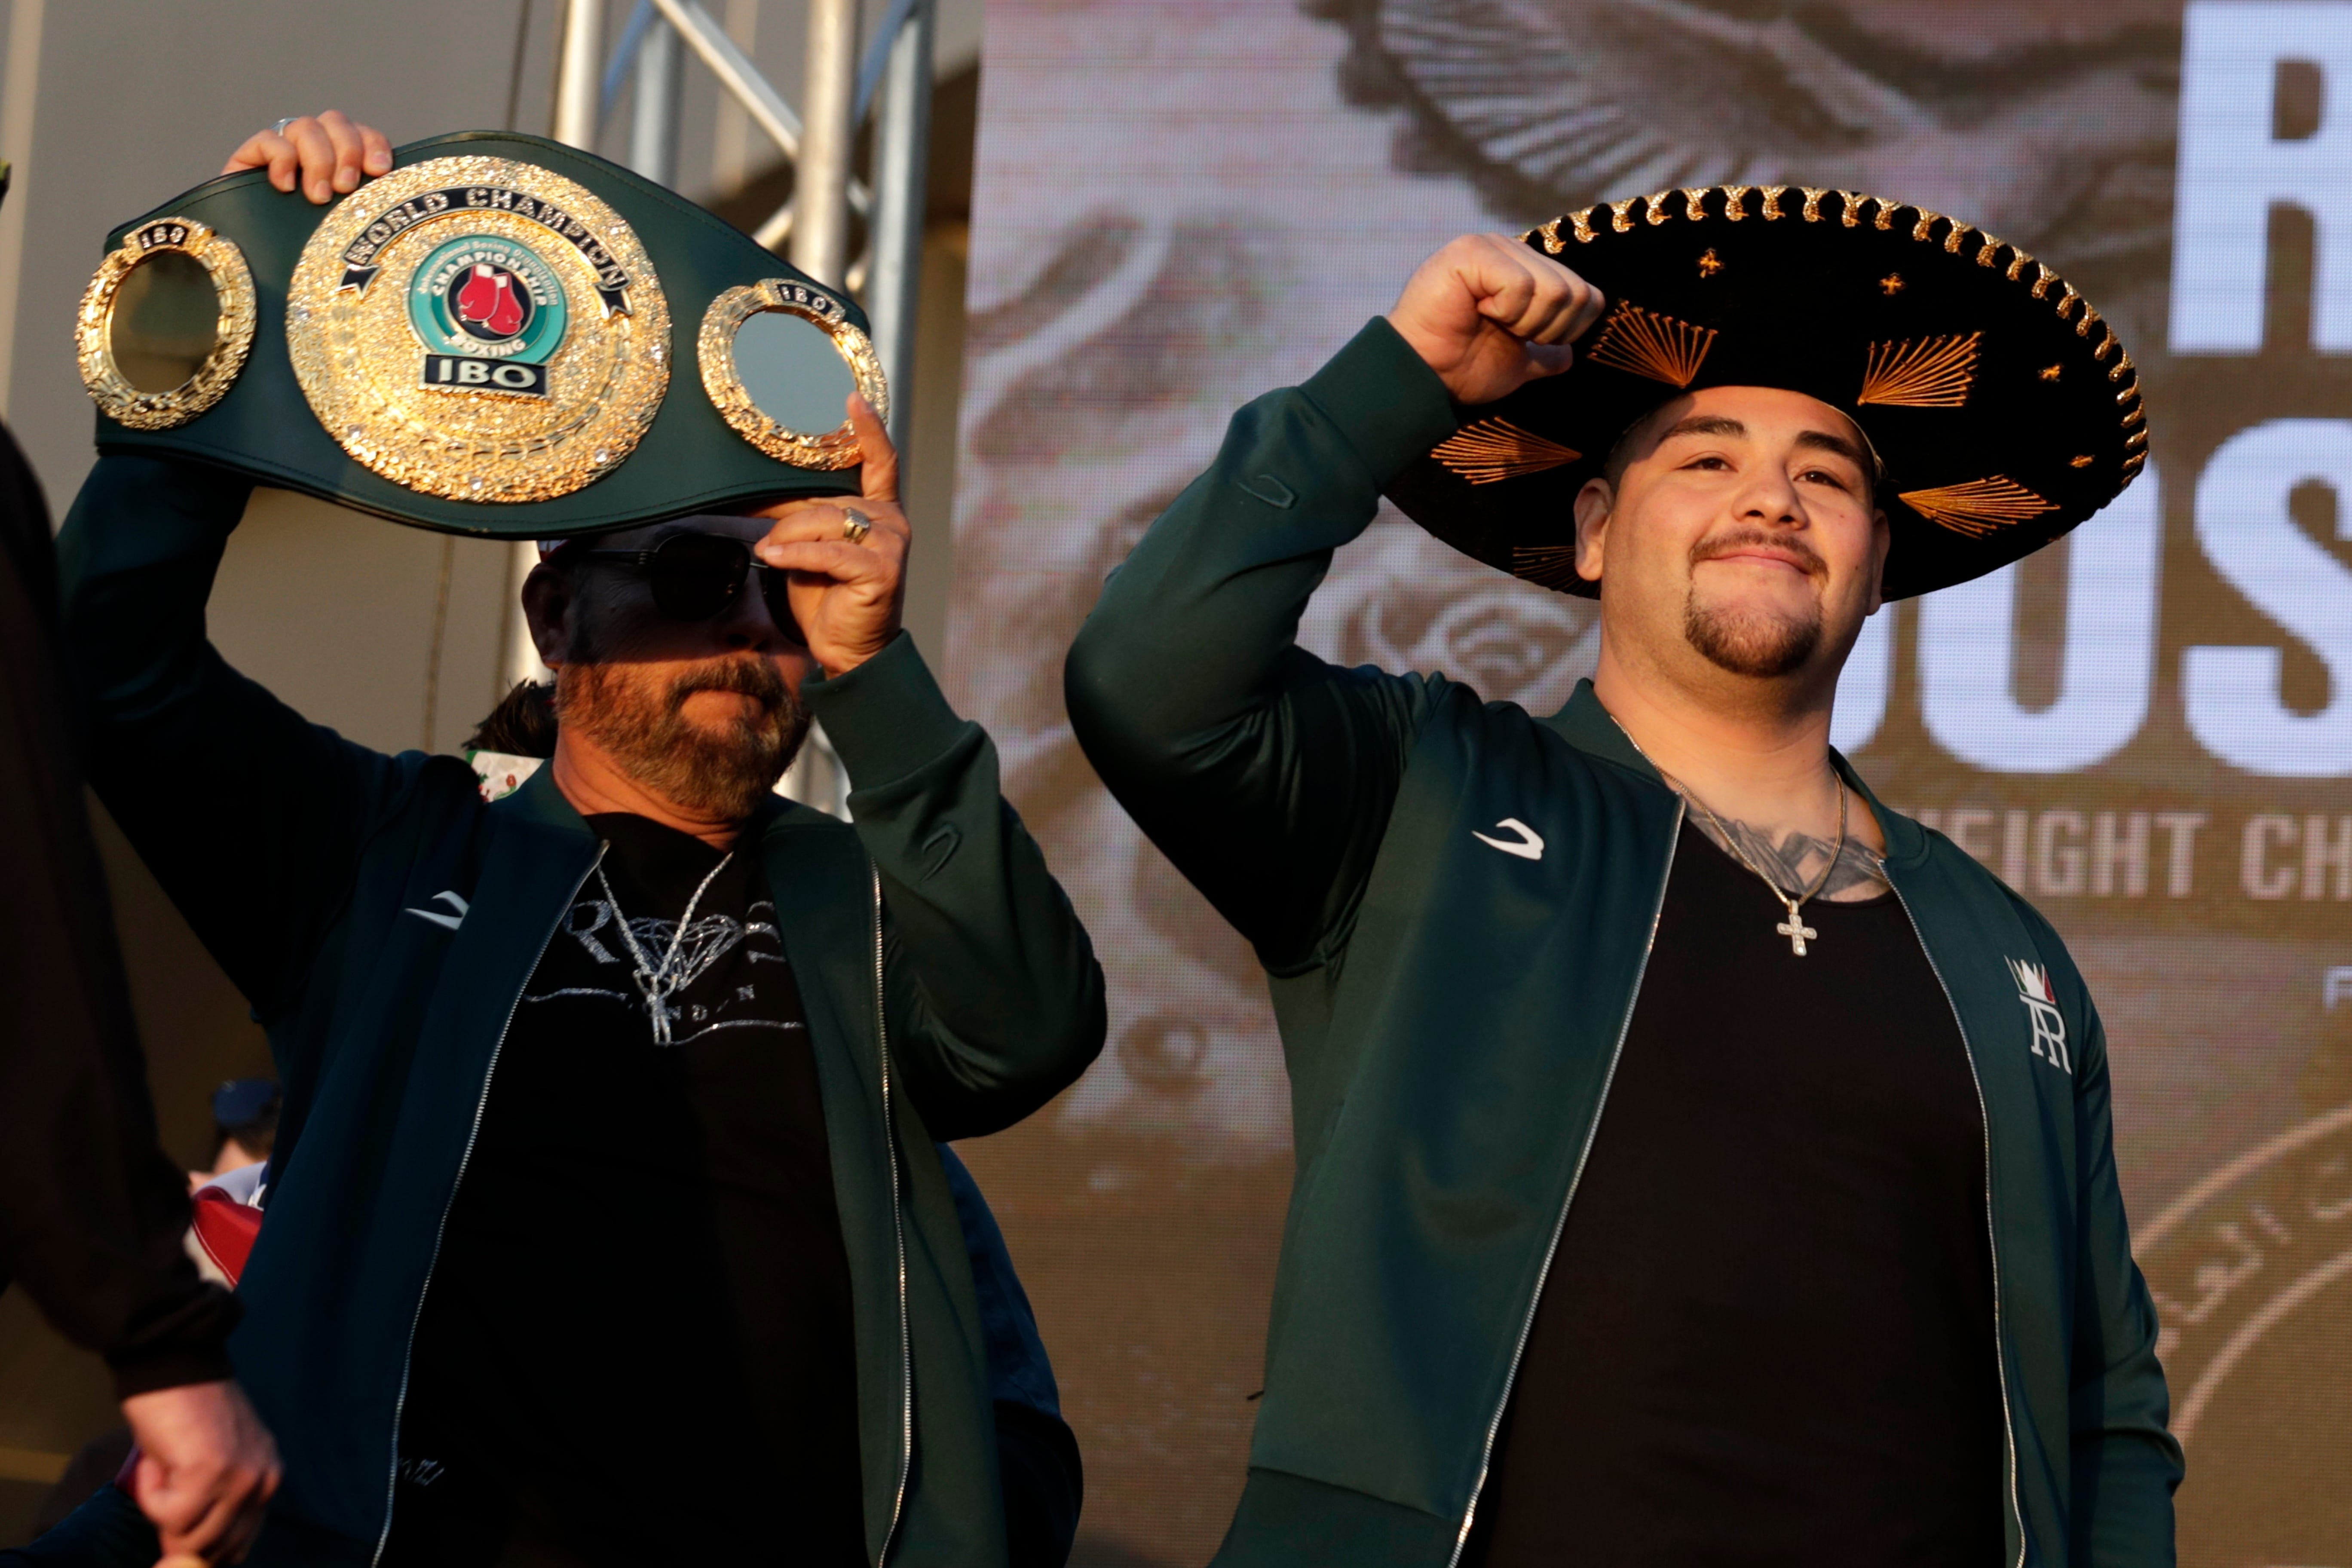 'It really means something to people': Rise of Andy Ruiz Jr. is bigger than boxing